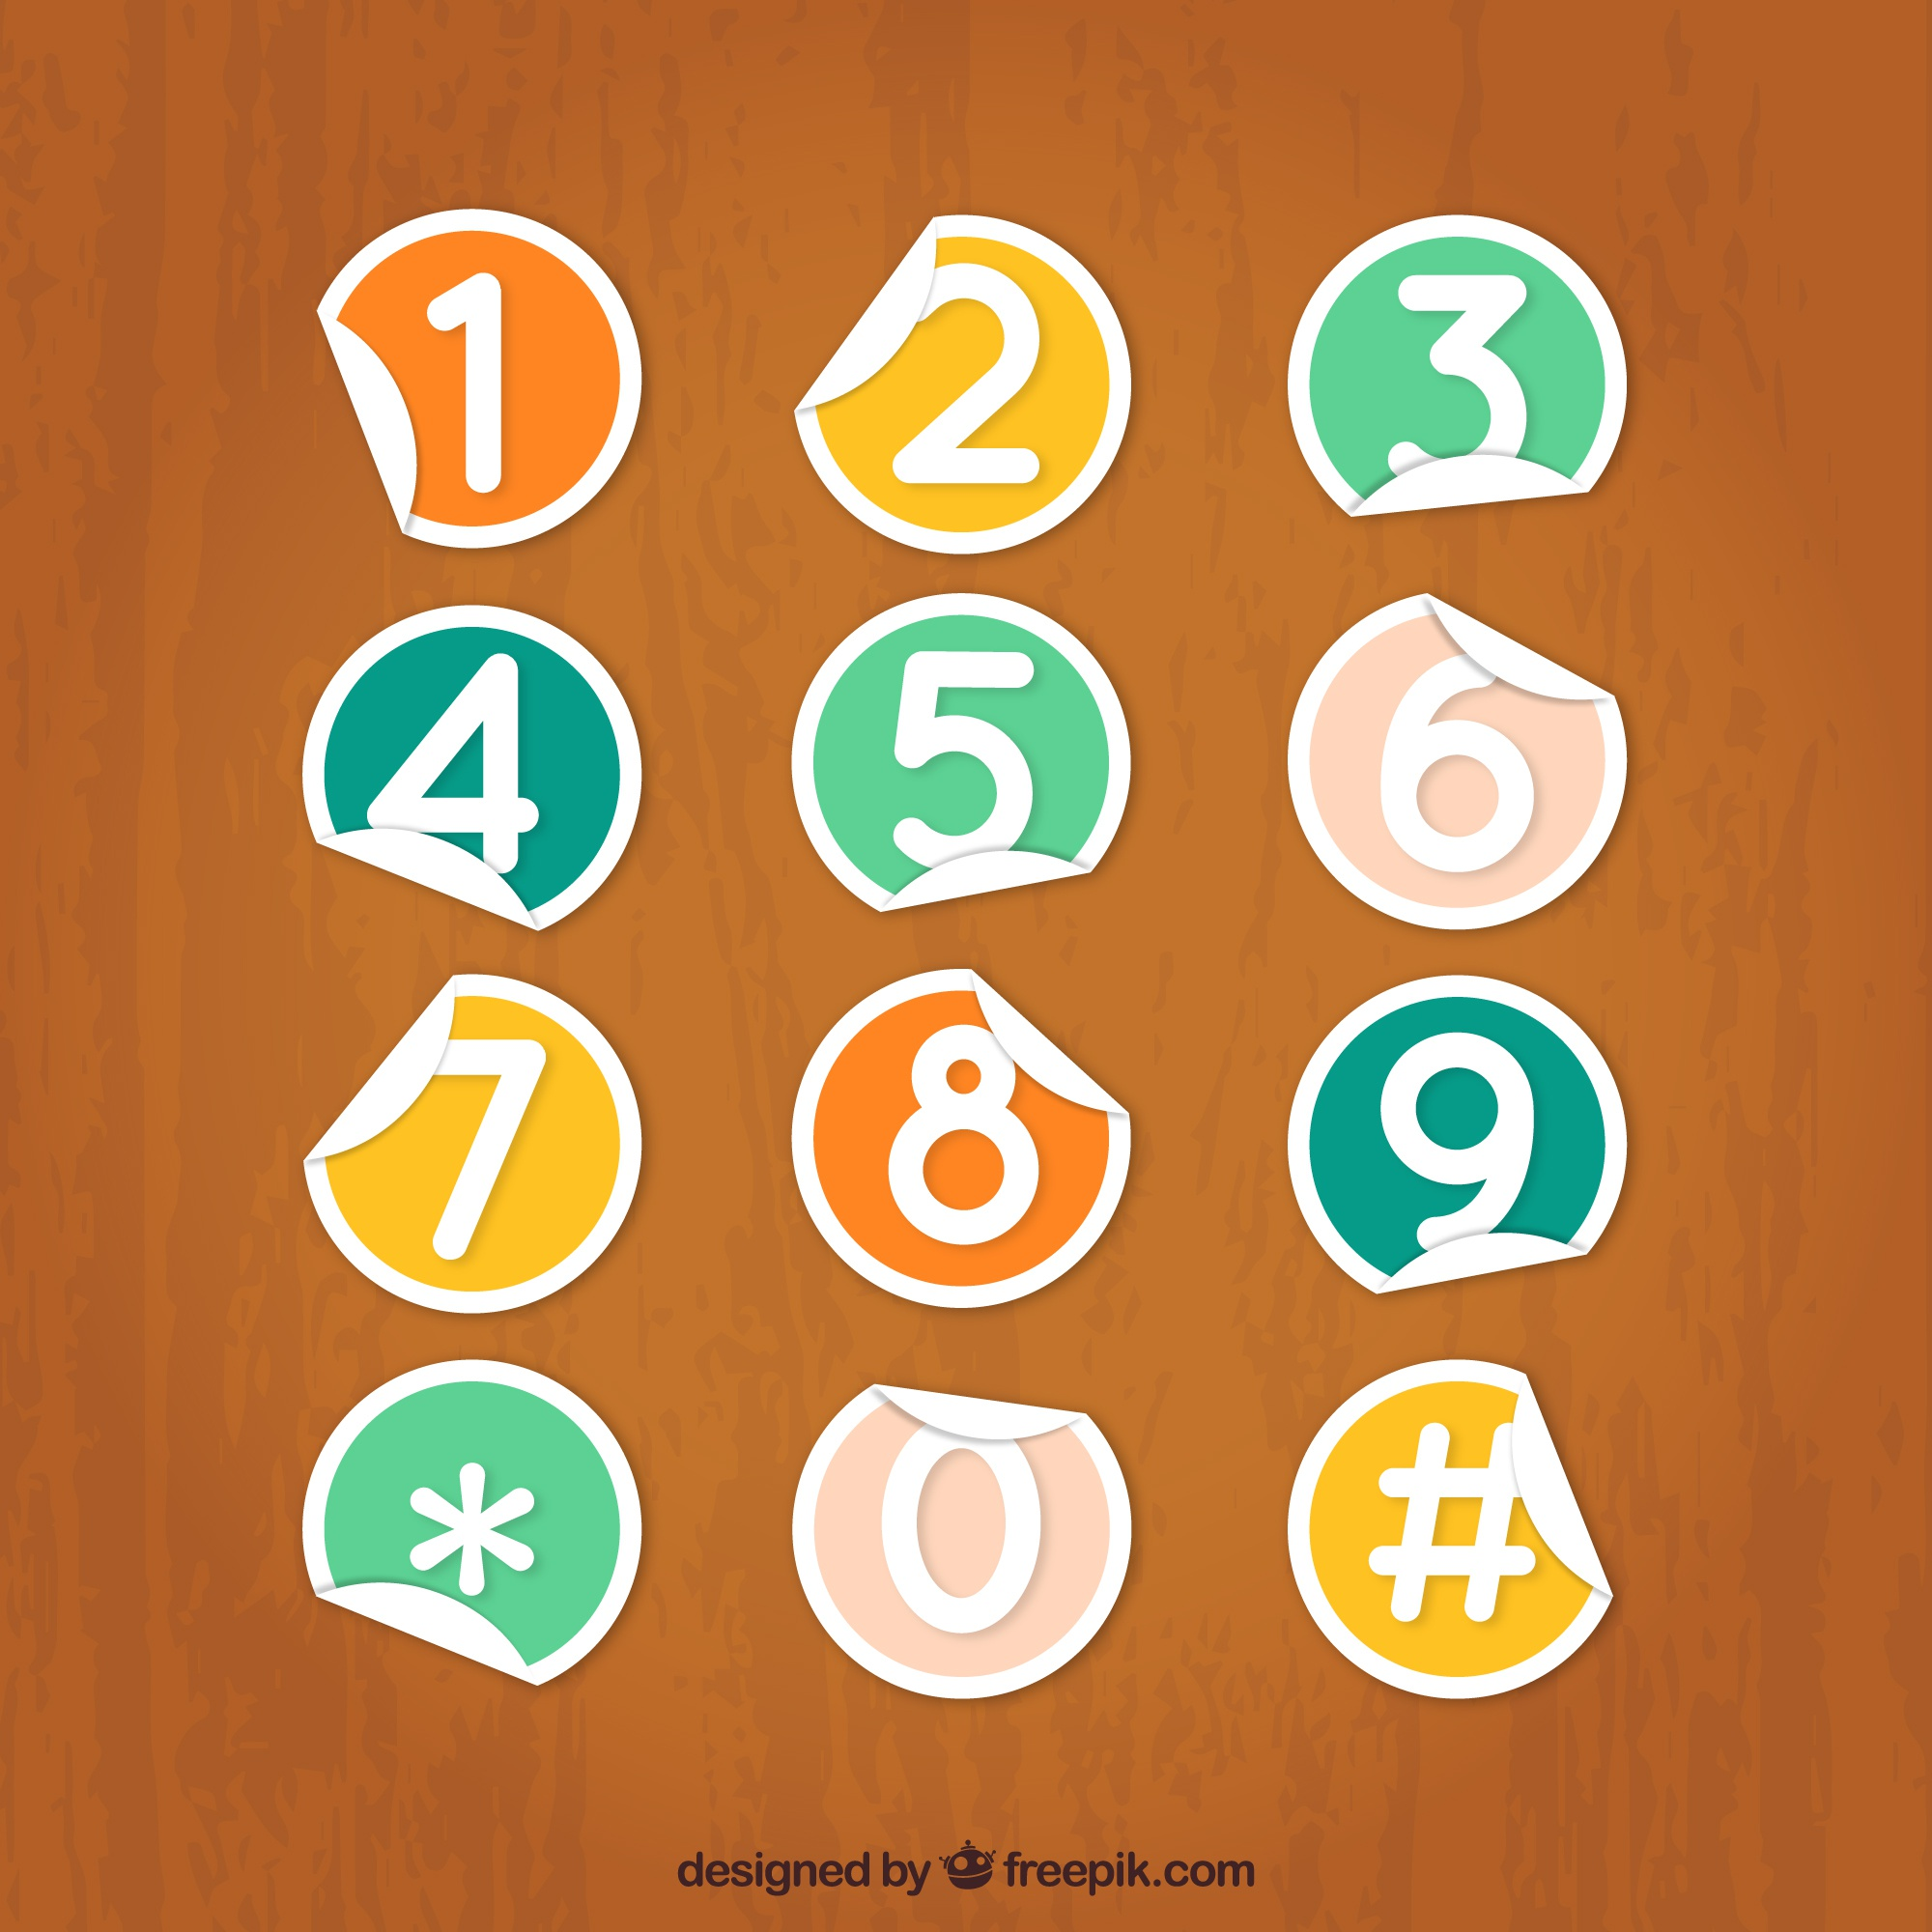 Telephone keypad numbers in sticker style